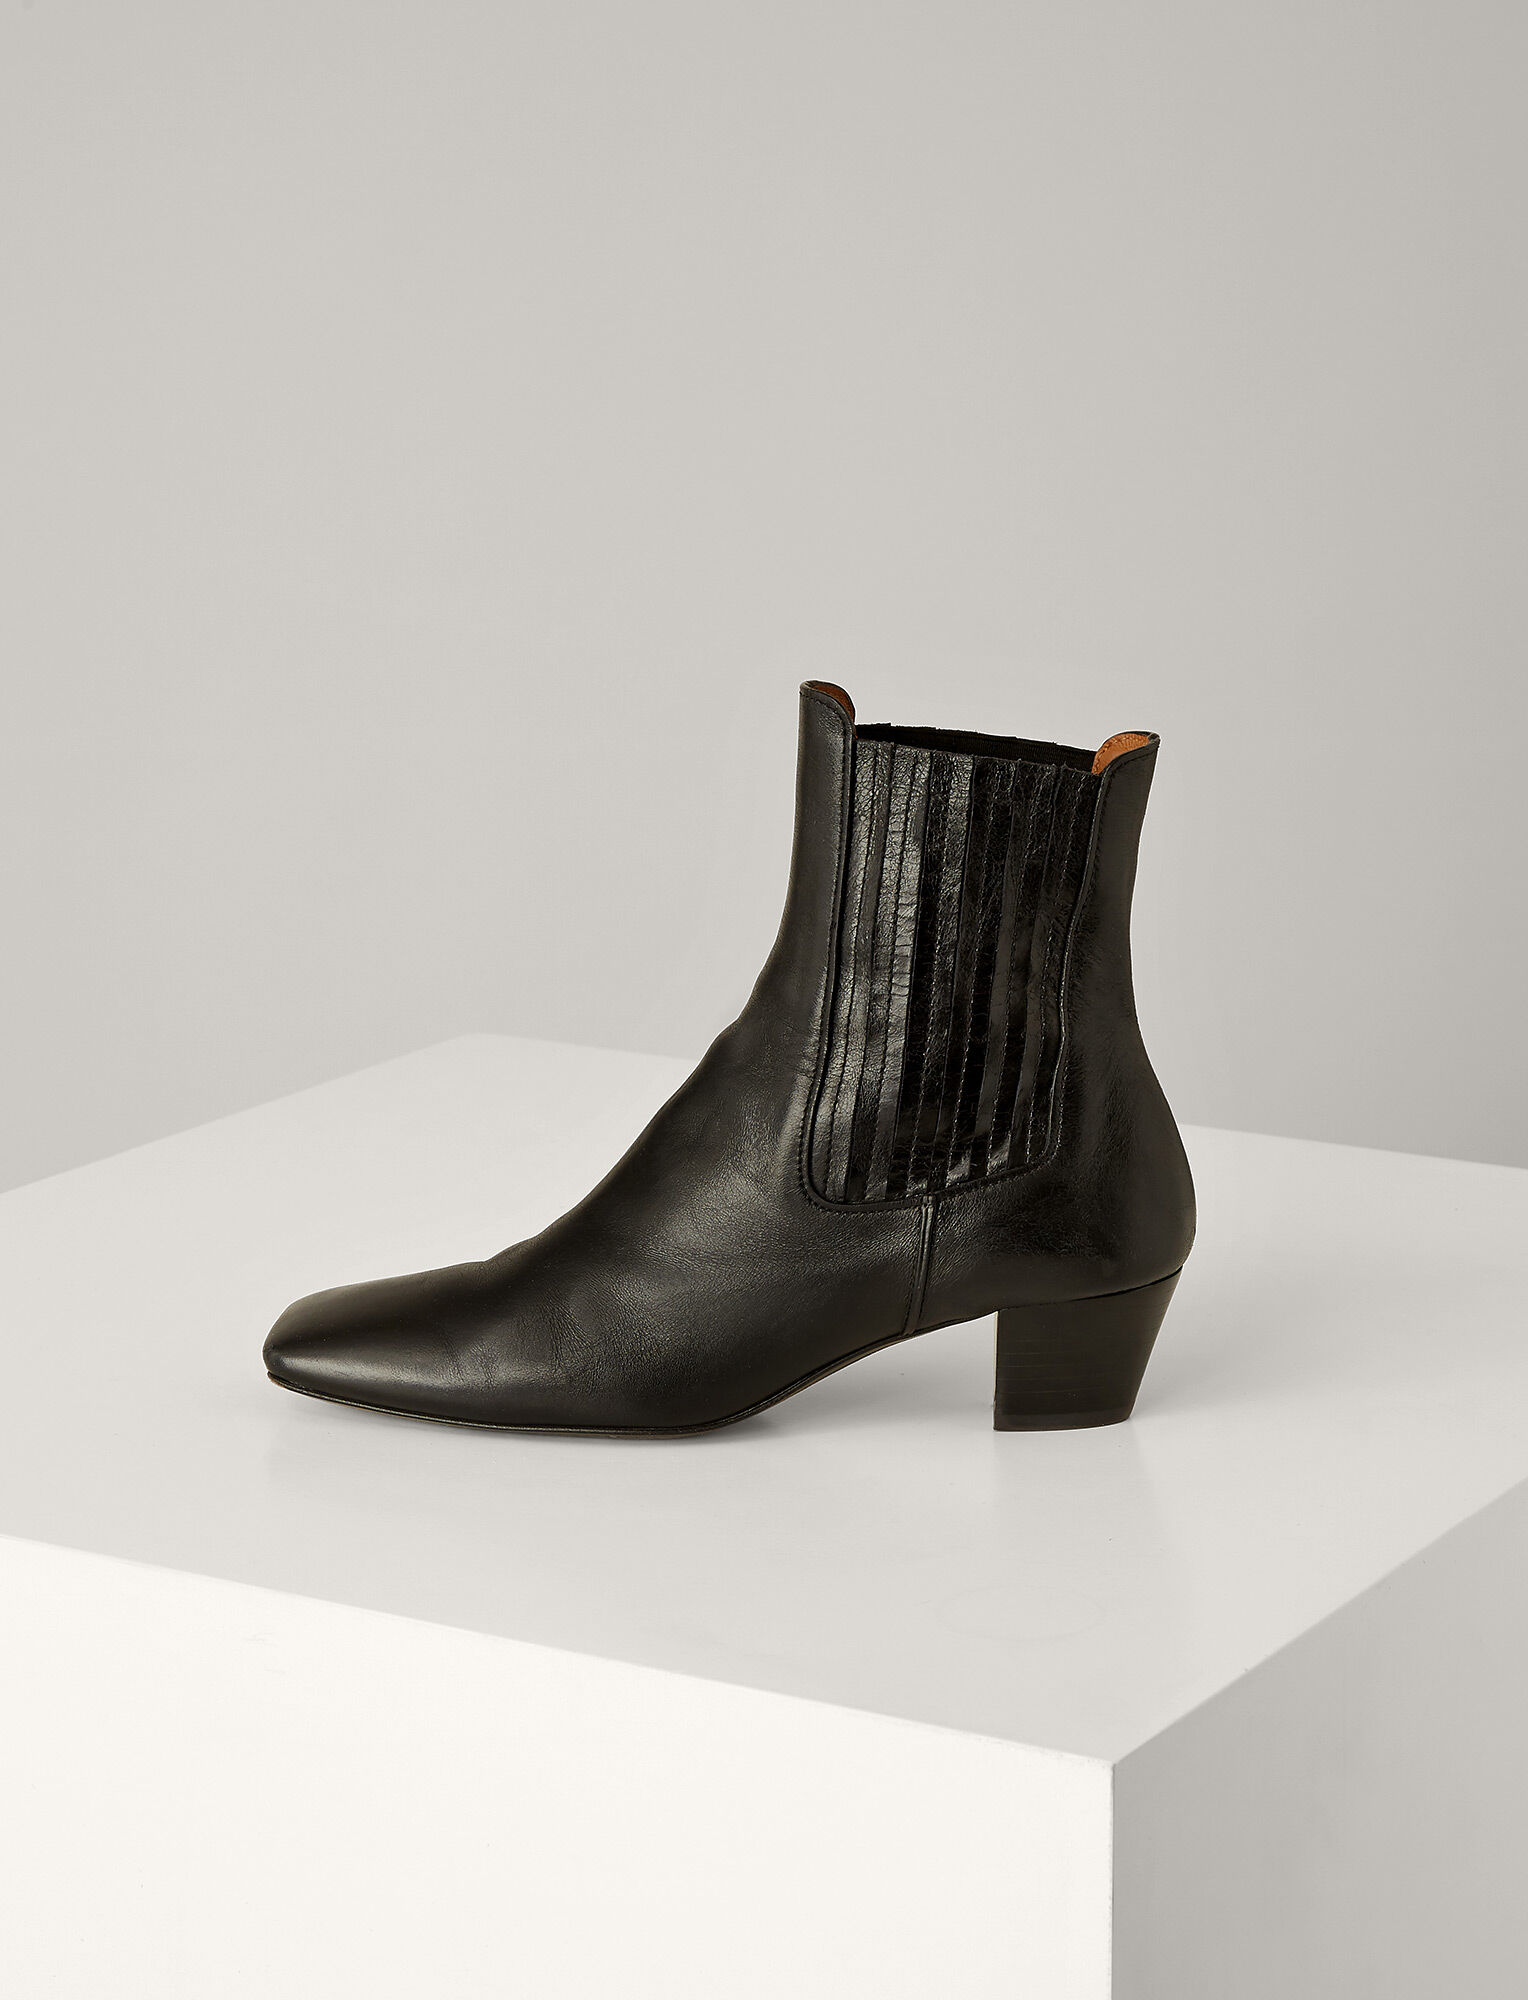 Joseph, Bottines Bettina en cuir, in BLACK